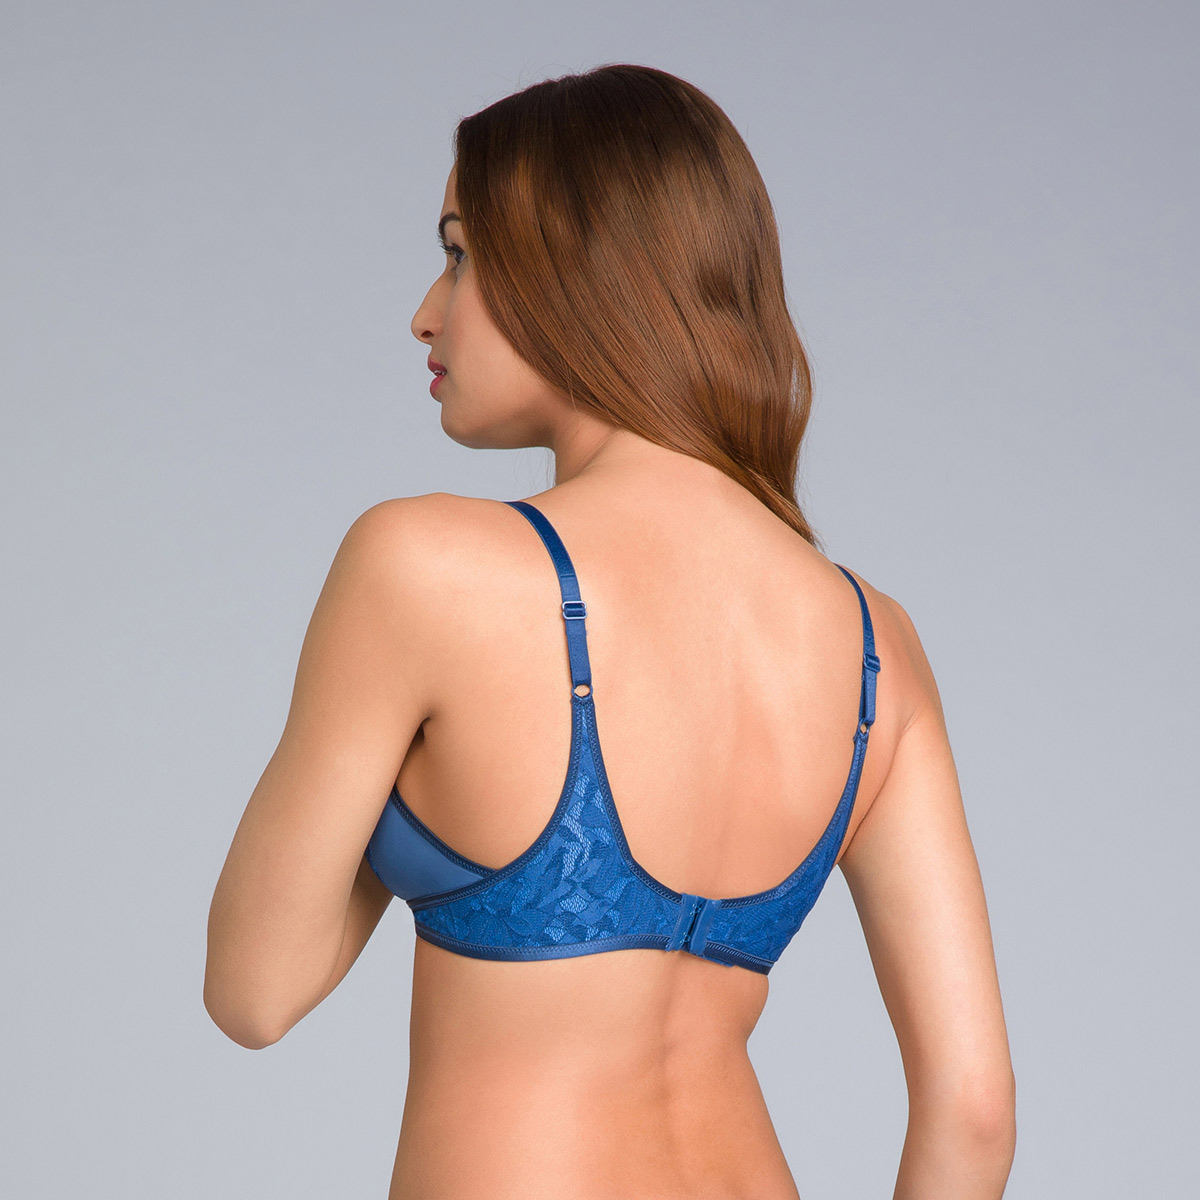 Soutien-gorge sans armatures bleu marine - Ideal Beauty Lace, , PLAYTEX